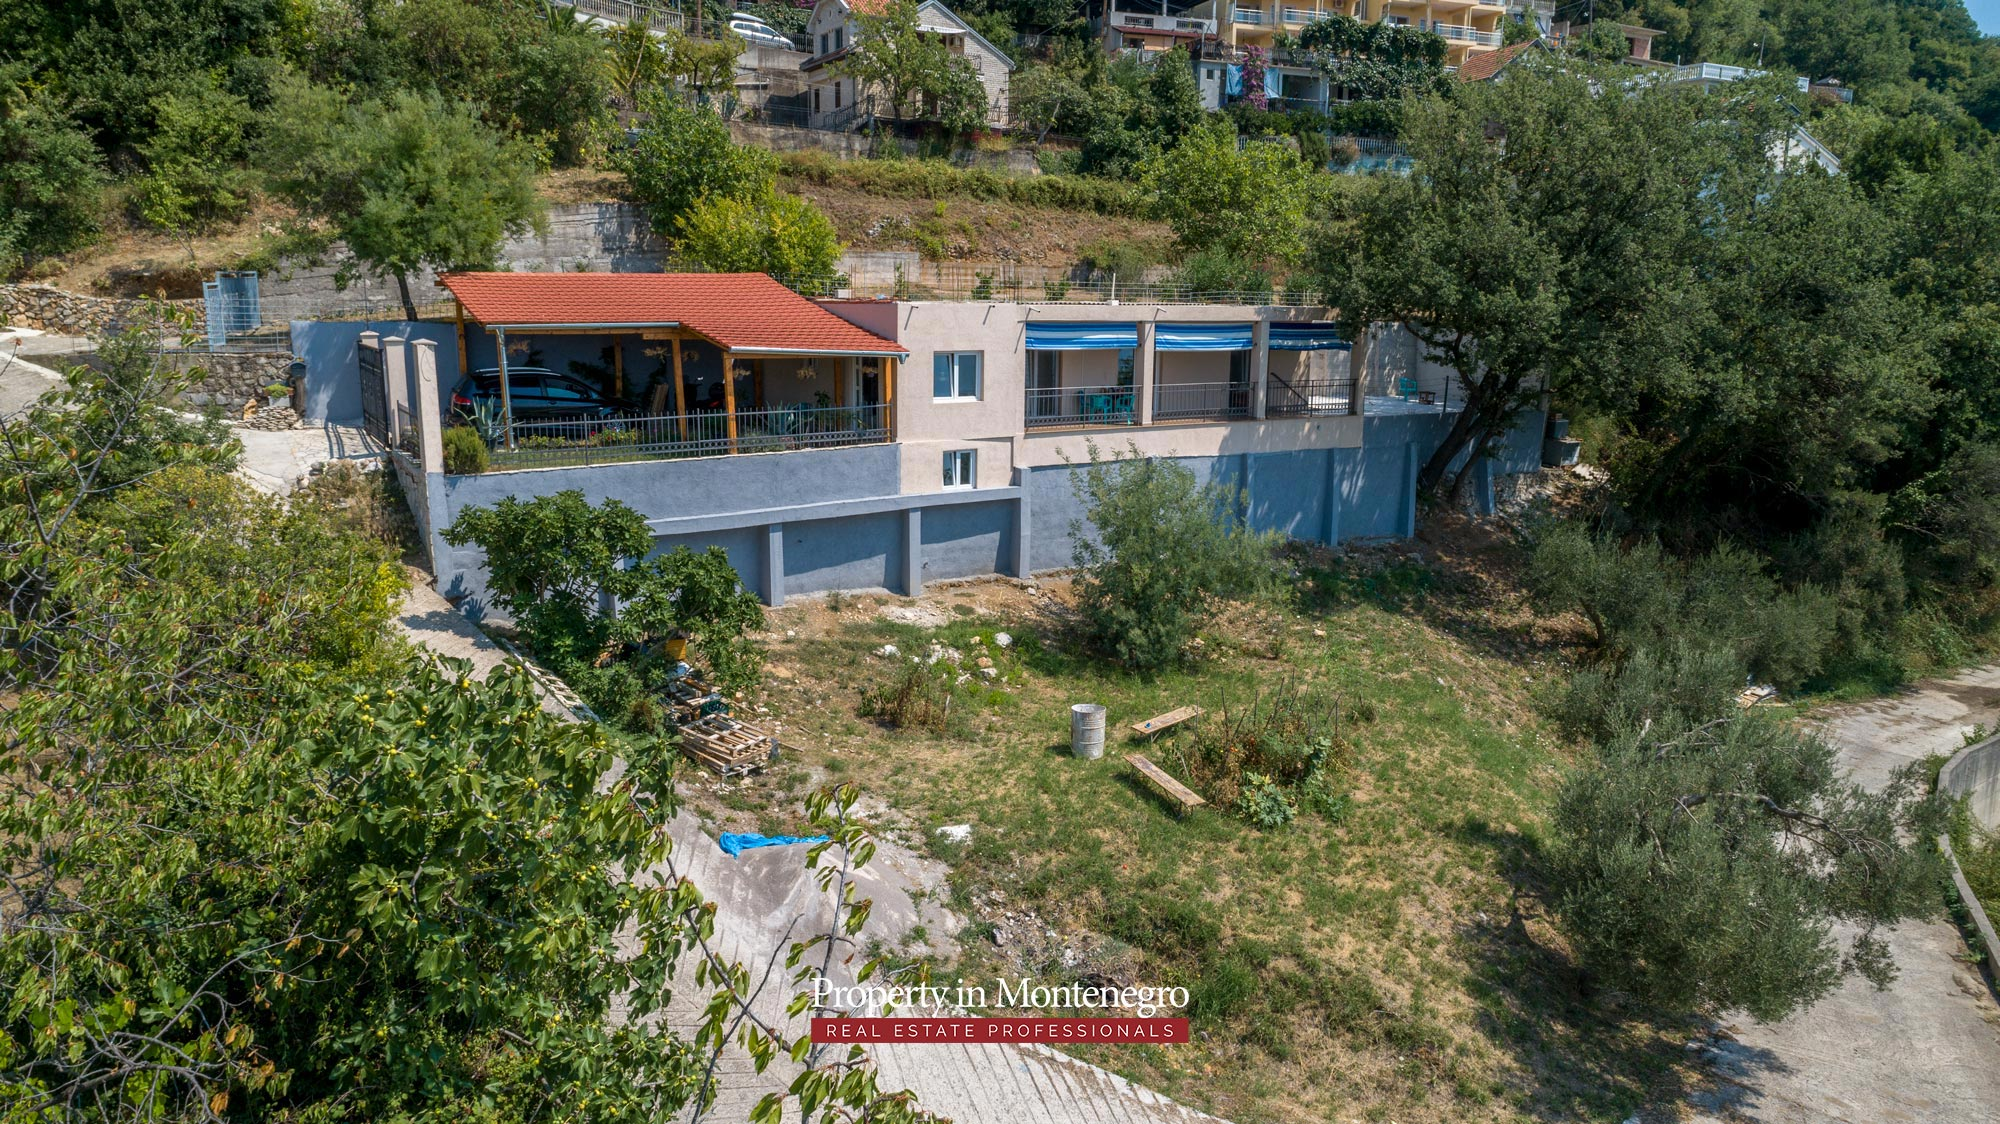 House-with-sea-view-for-sale-in-Budva (11).jpg